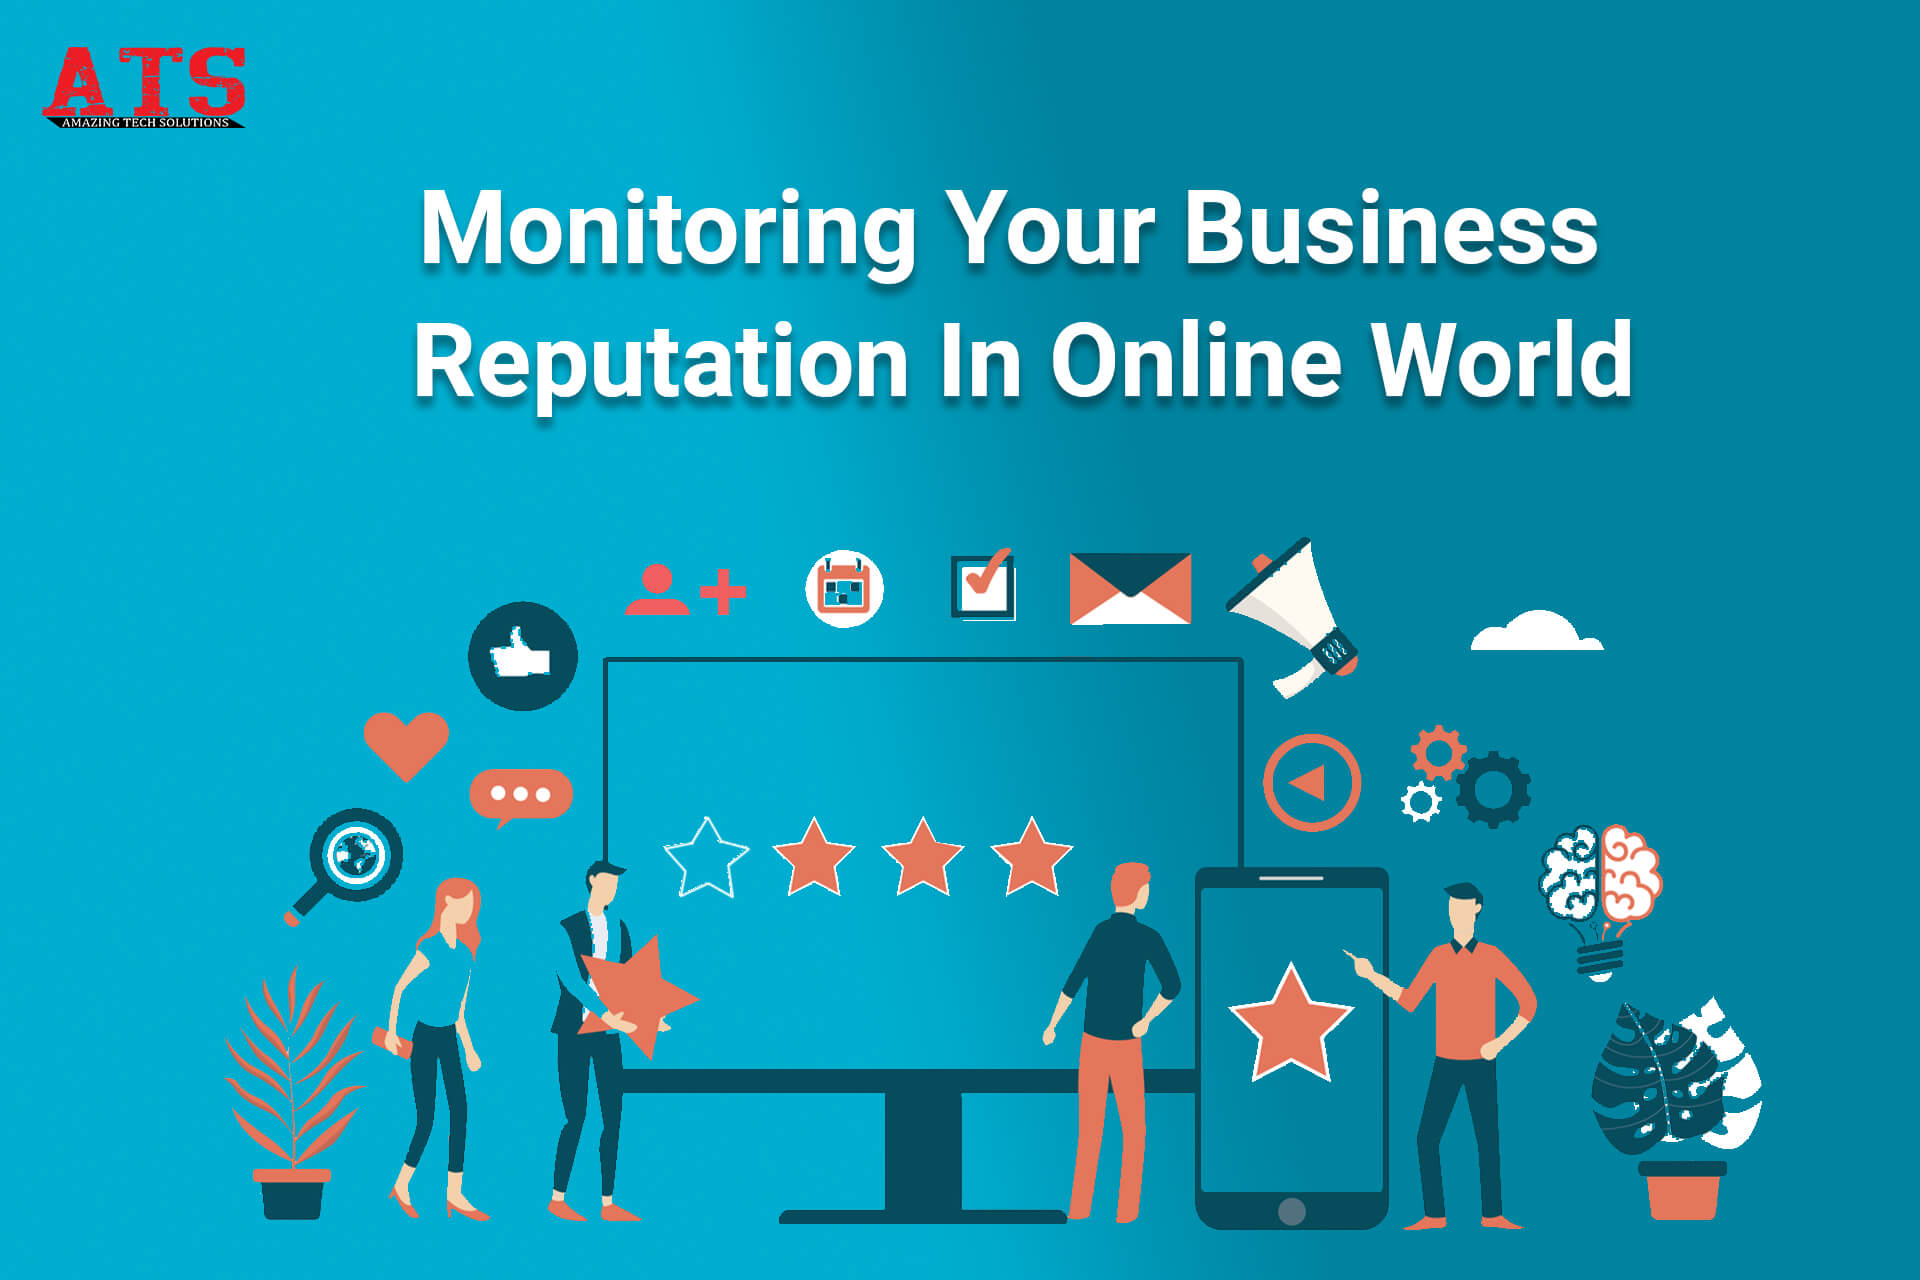 Monitoring Your Business Reputation In Online World